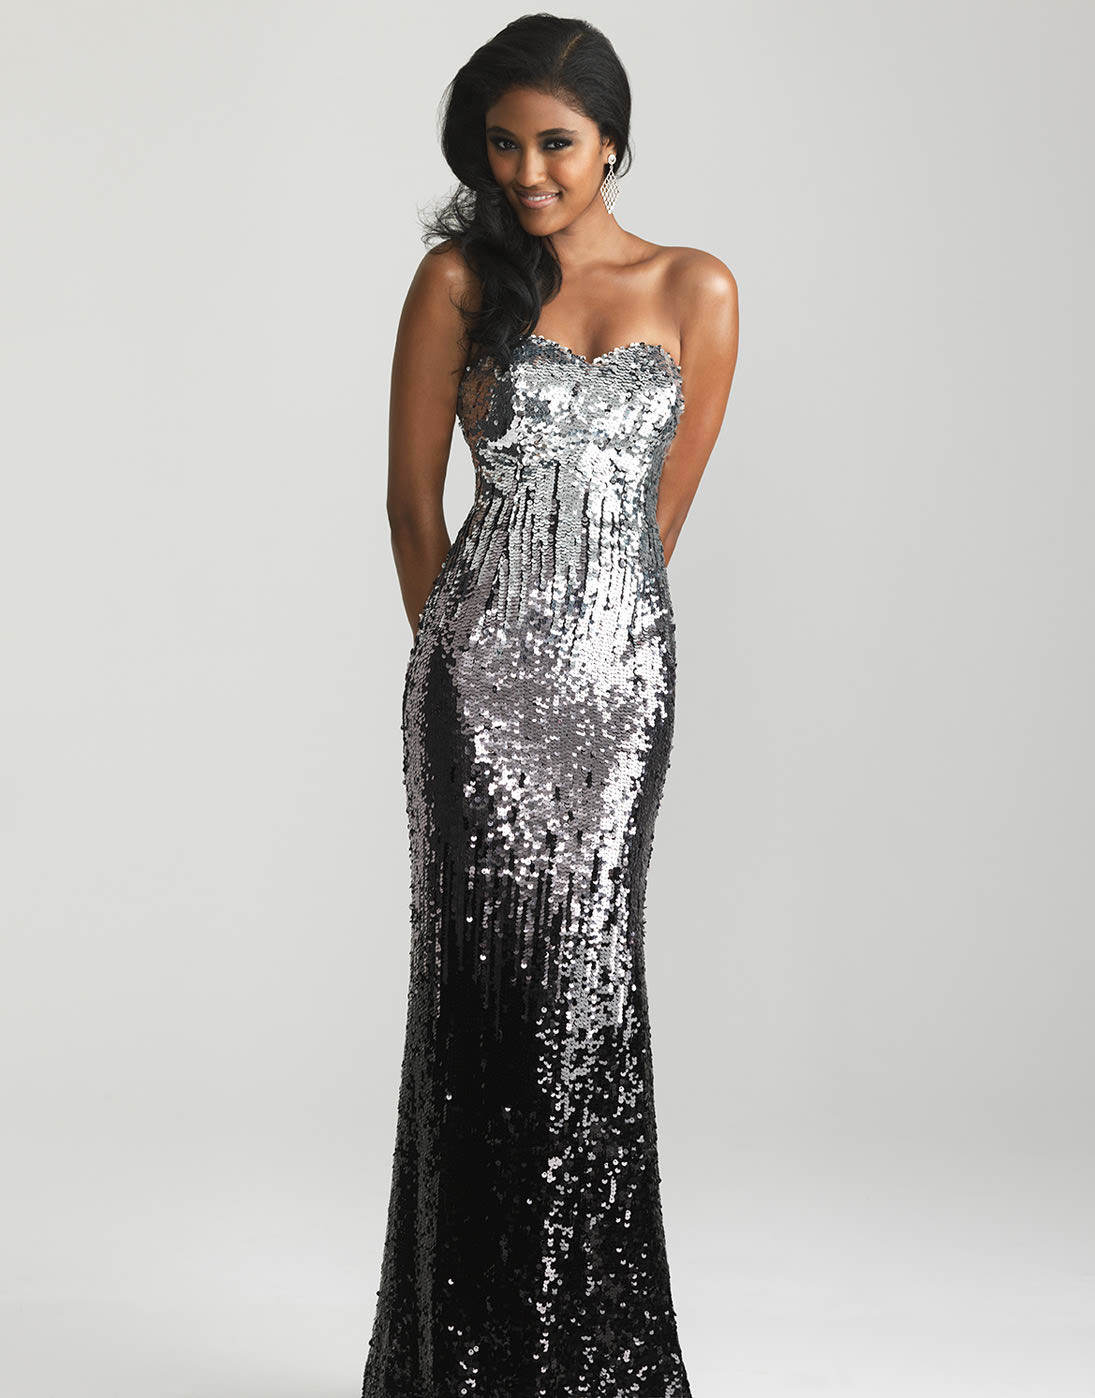 52 Black Girls Prom Outfits-20 Ideas What to Wear for Prom